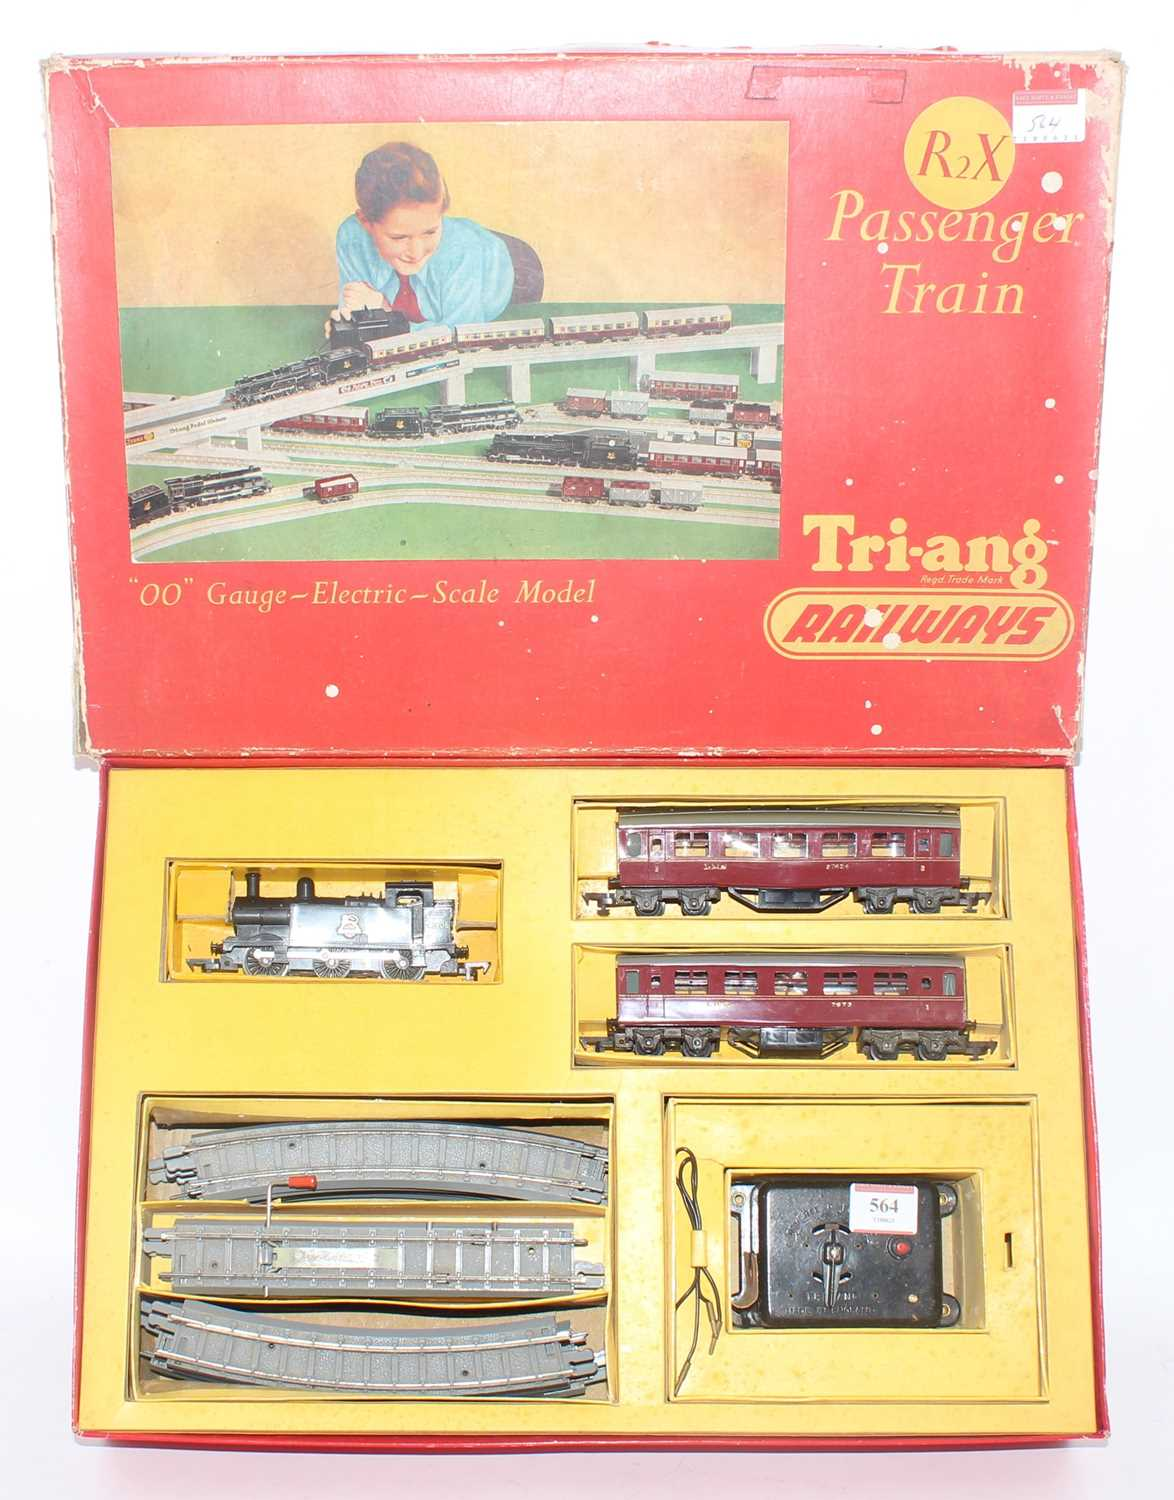 Triang R2X passenger set comprising 0-6-0 tank loco BR 47606, 2 x LMS coaches, track and battery